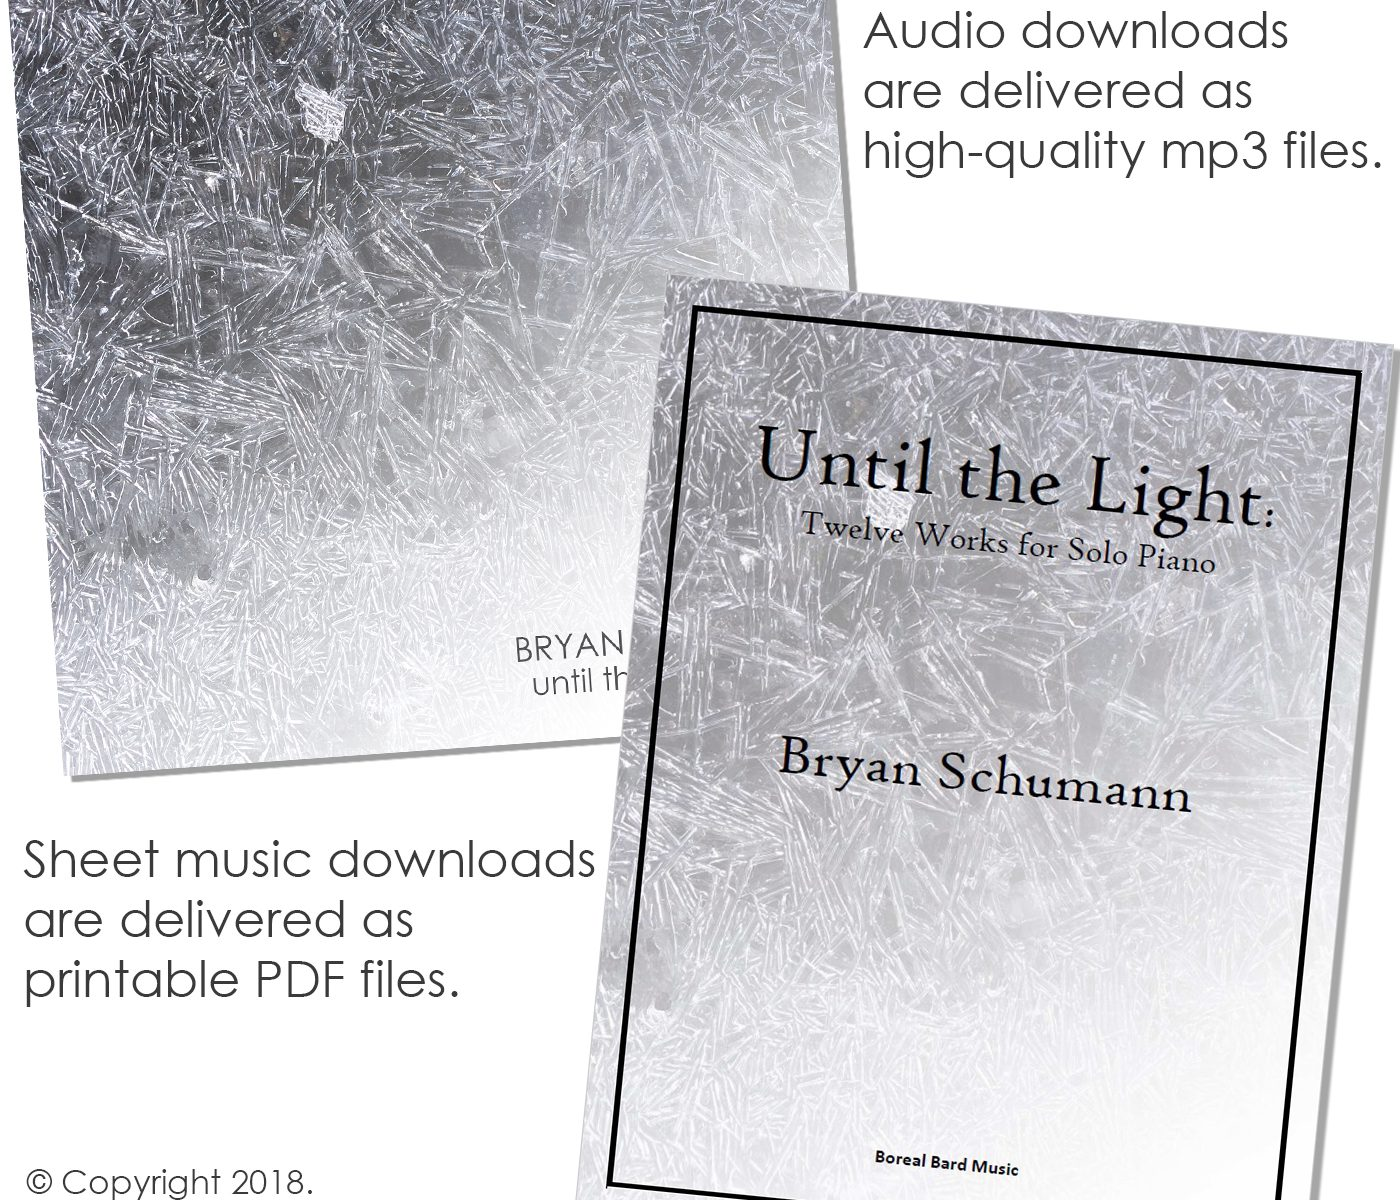 Until the Light CD cover and sheet music booklet cover images